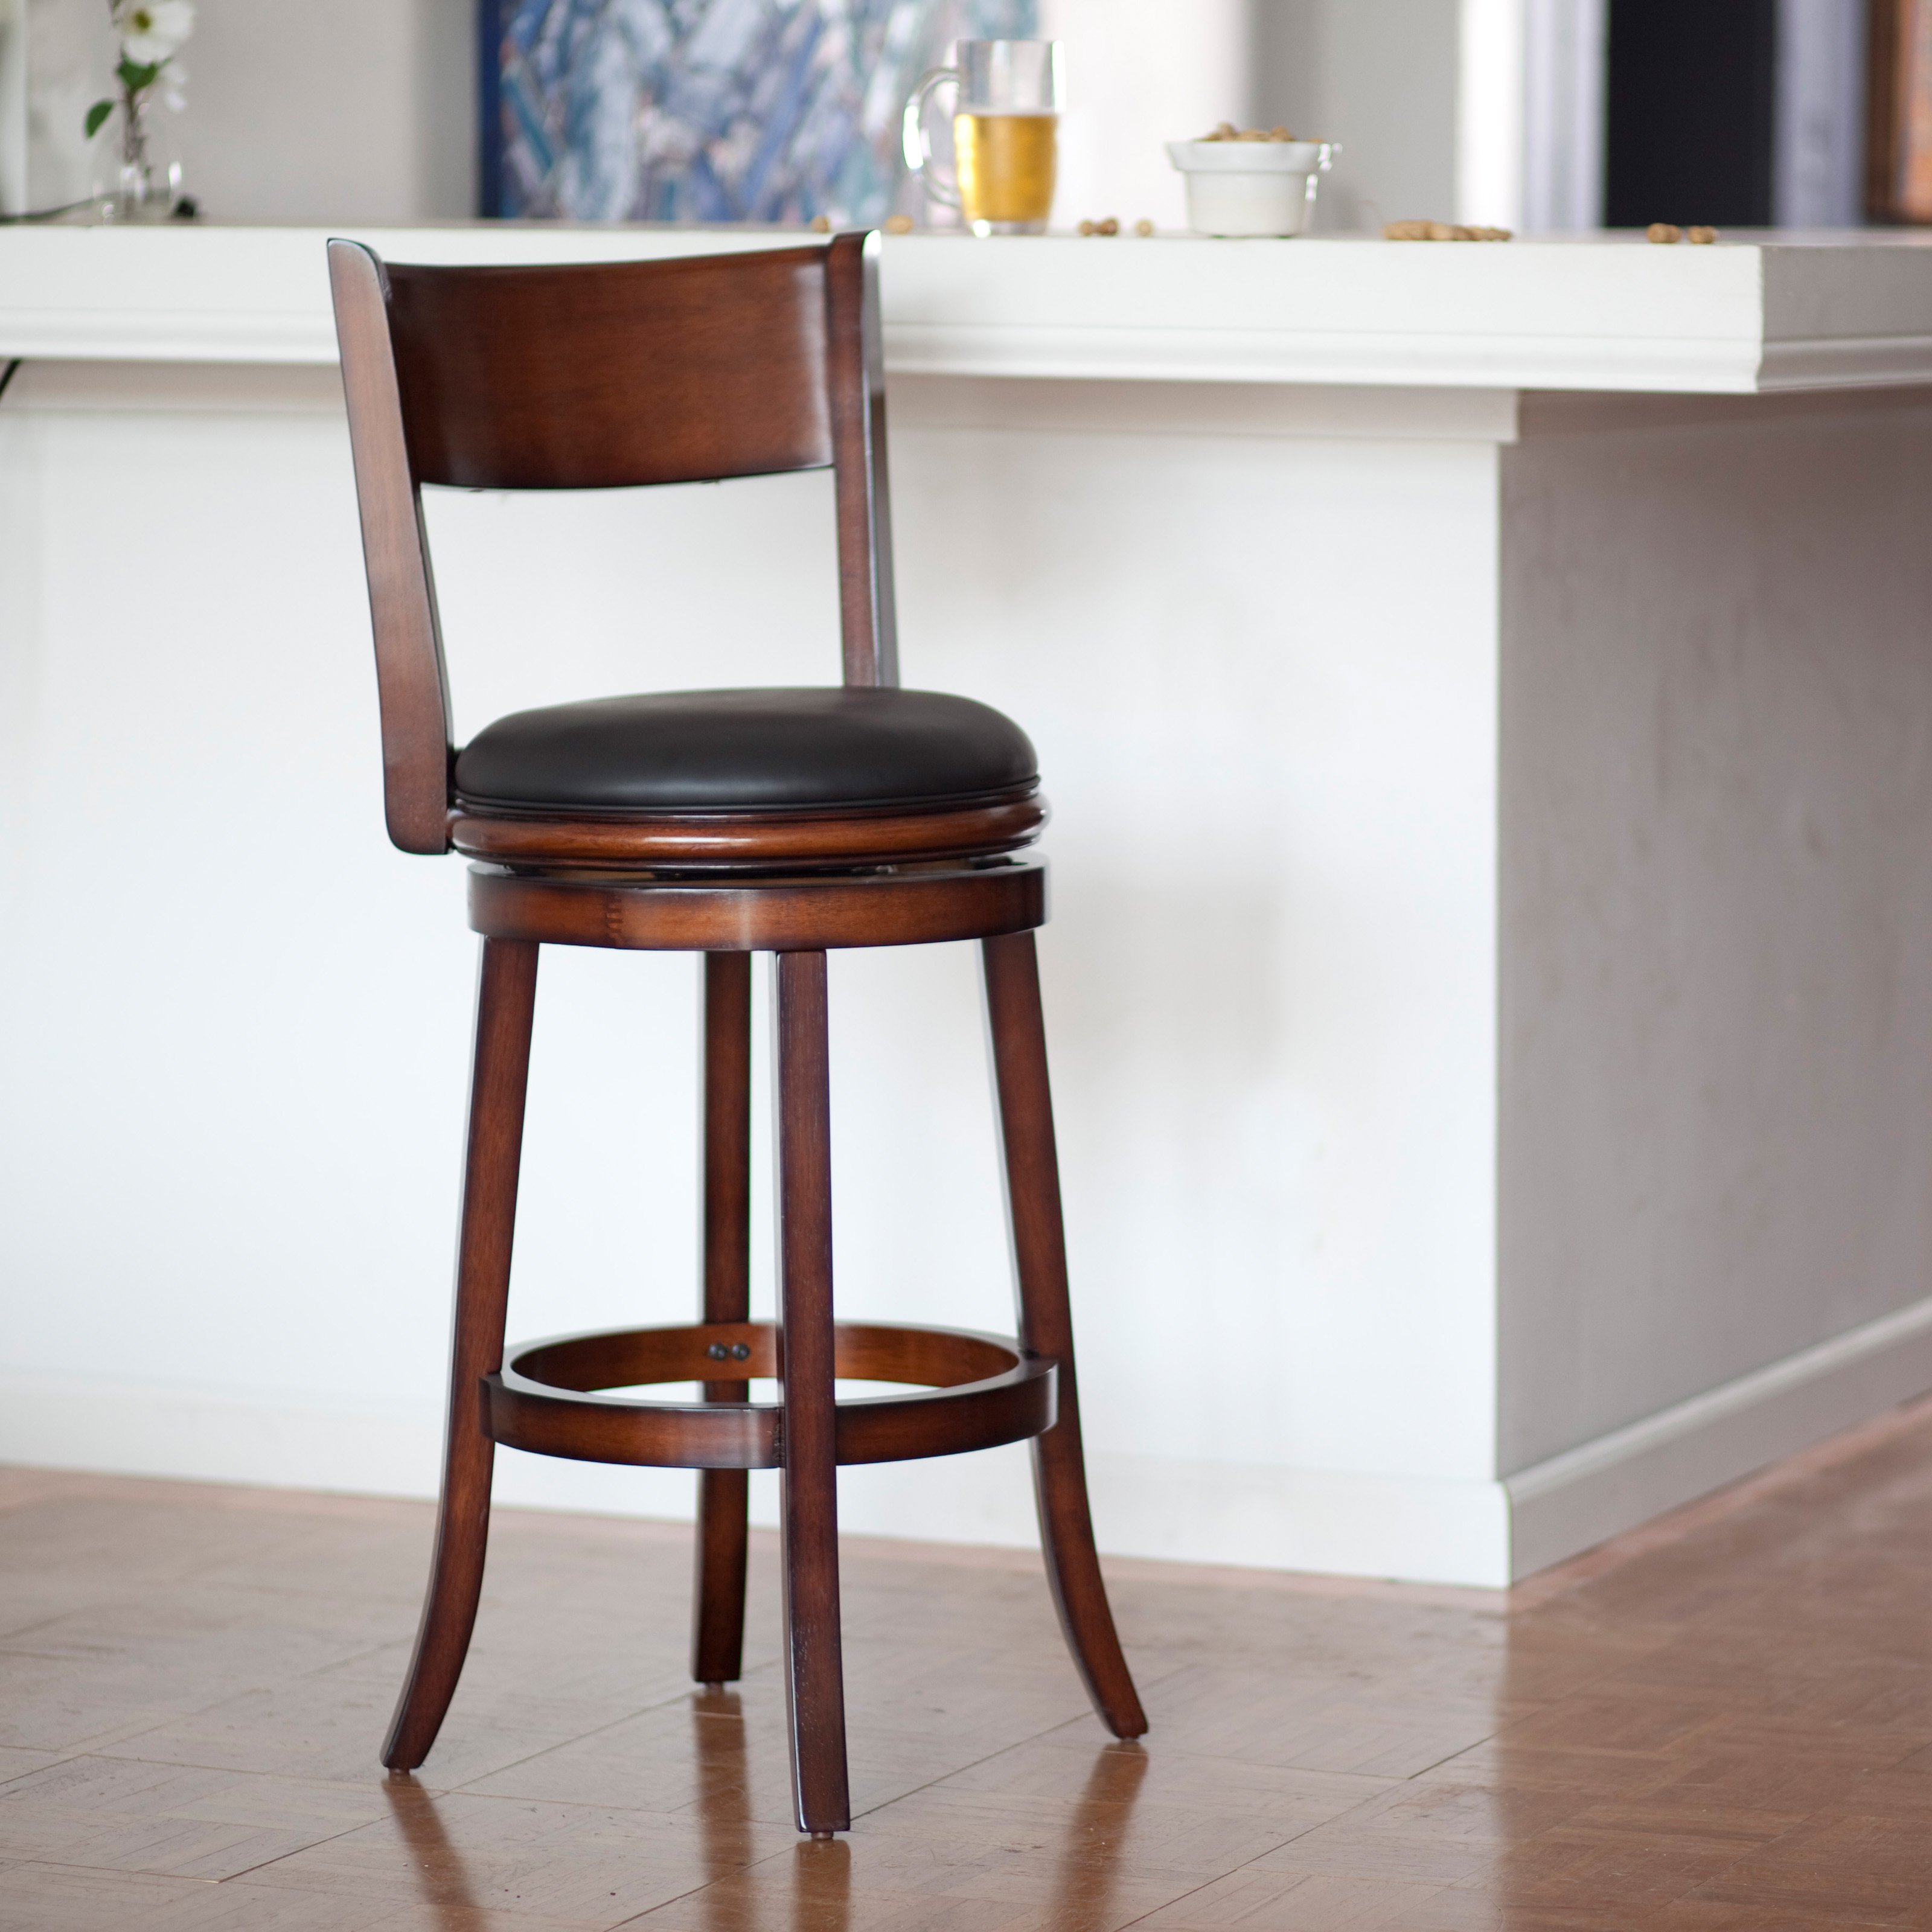 Living outstanding wooden bar stools with backrests 19 kitchen counter ideas NCSKLHK